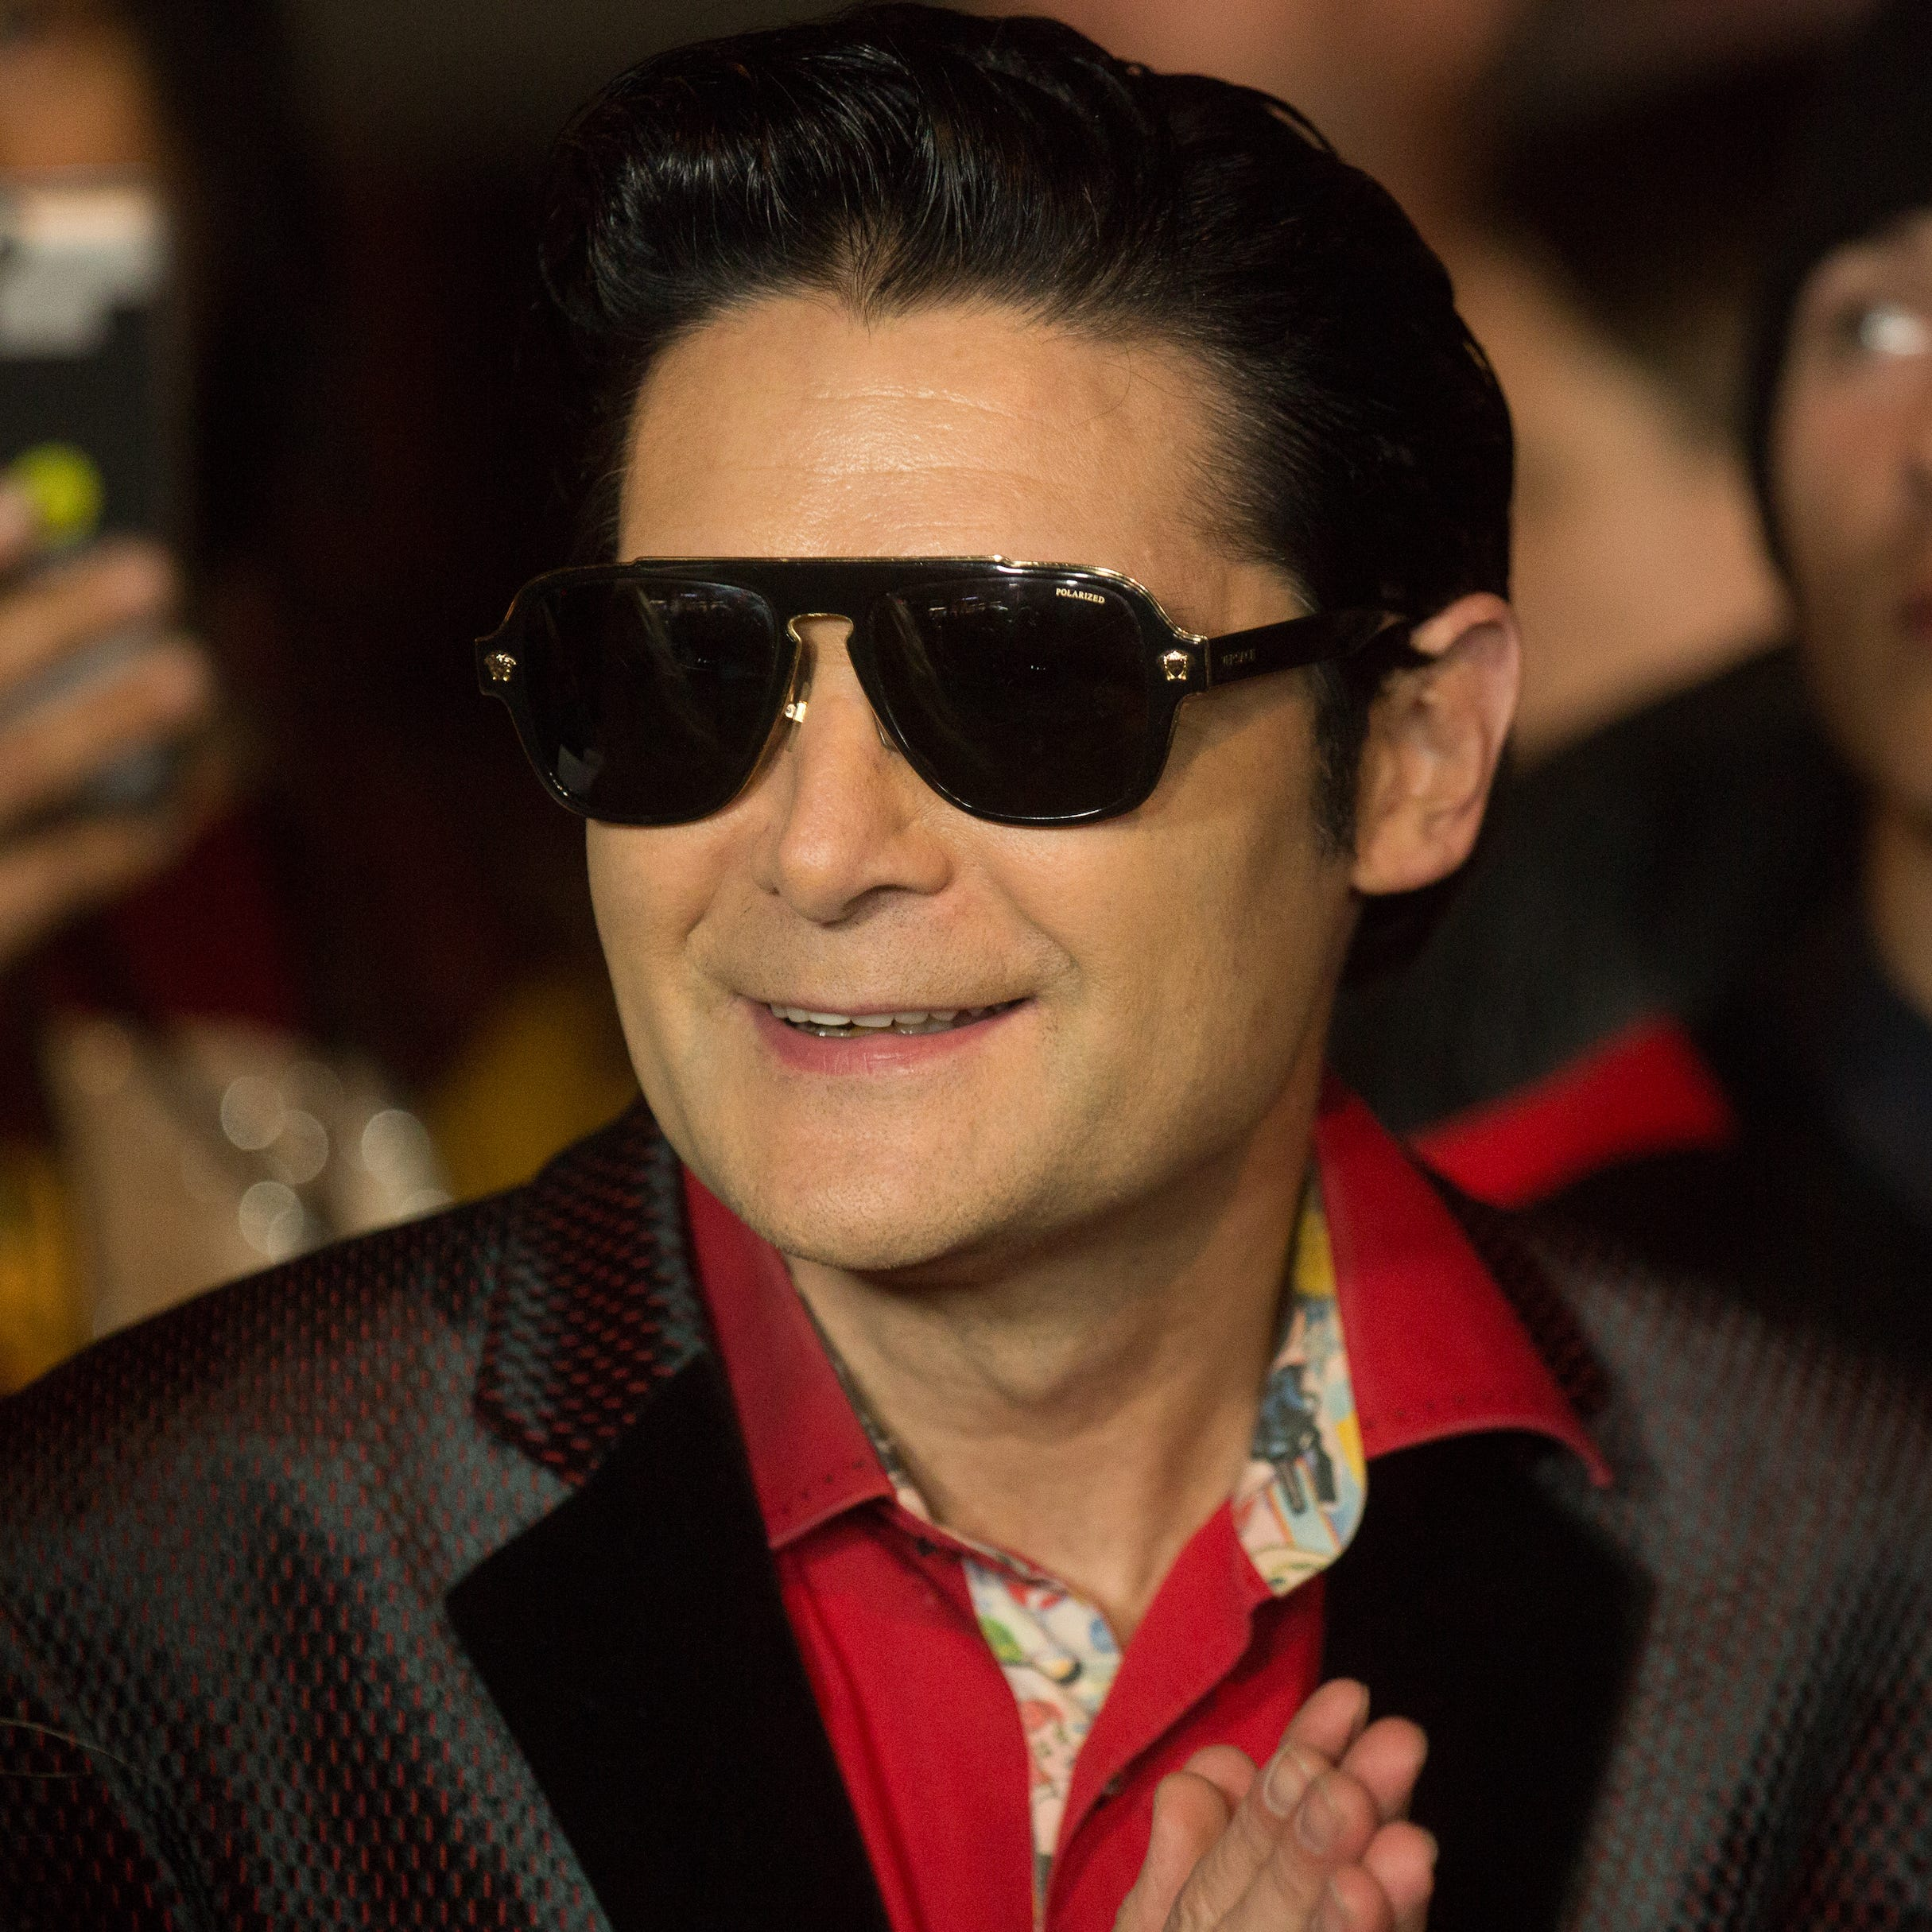 Corey Feldman can 'no longer' defend Michael Jackson after 'horrendous' abuse allegations